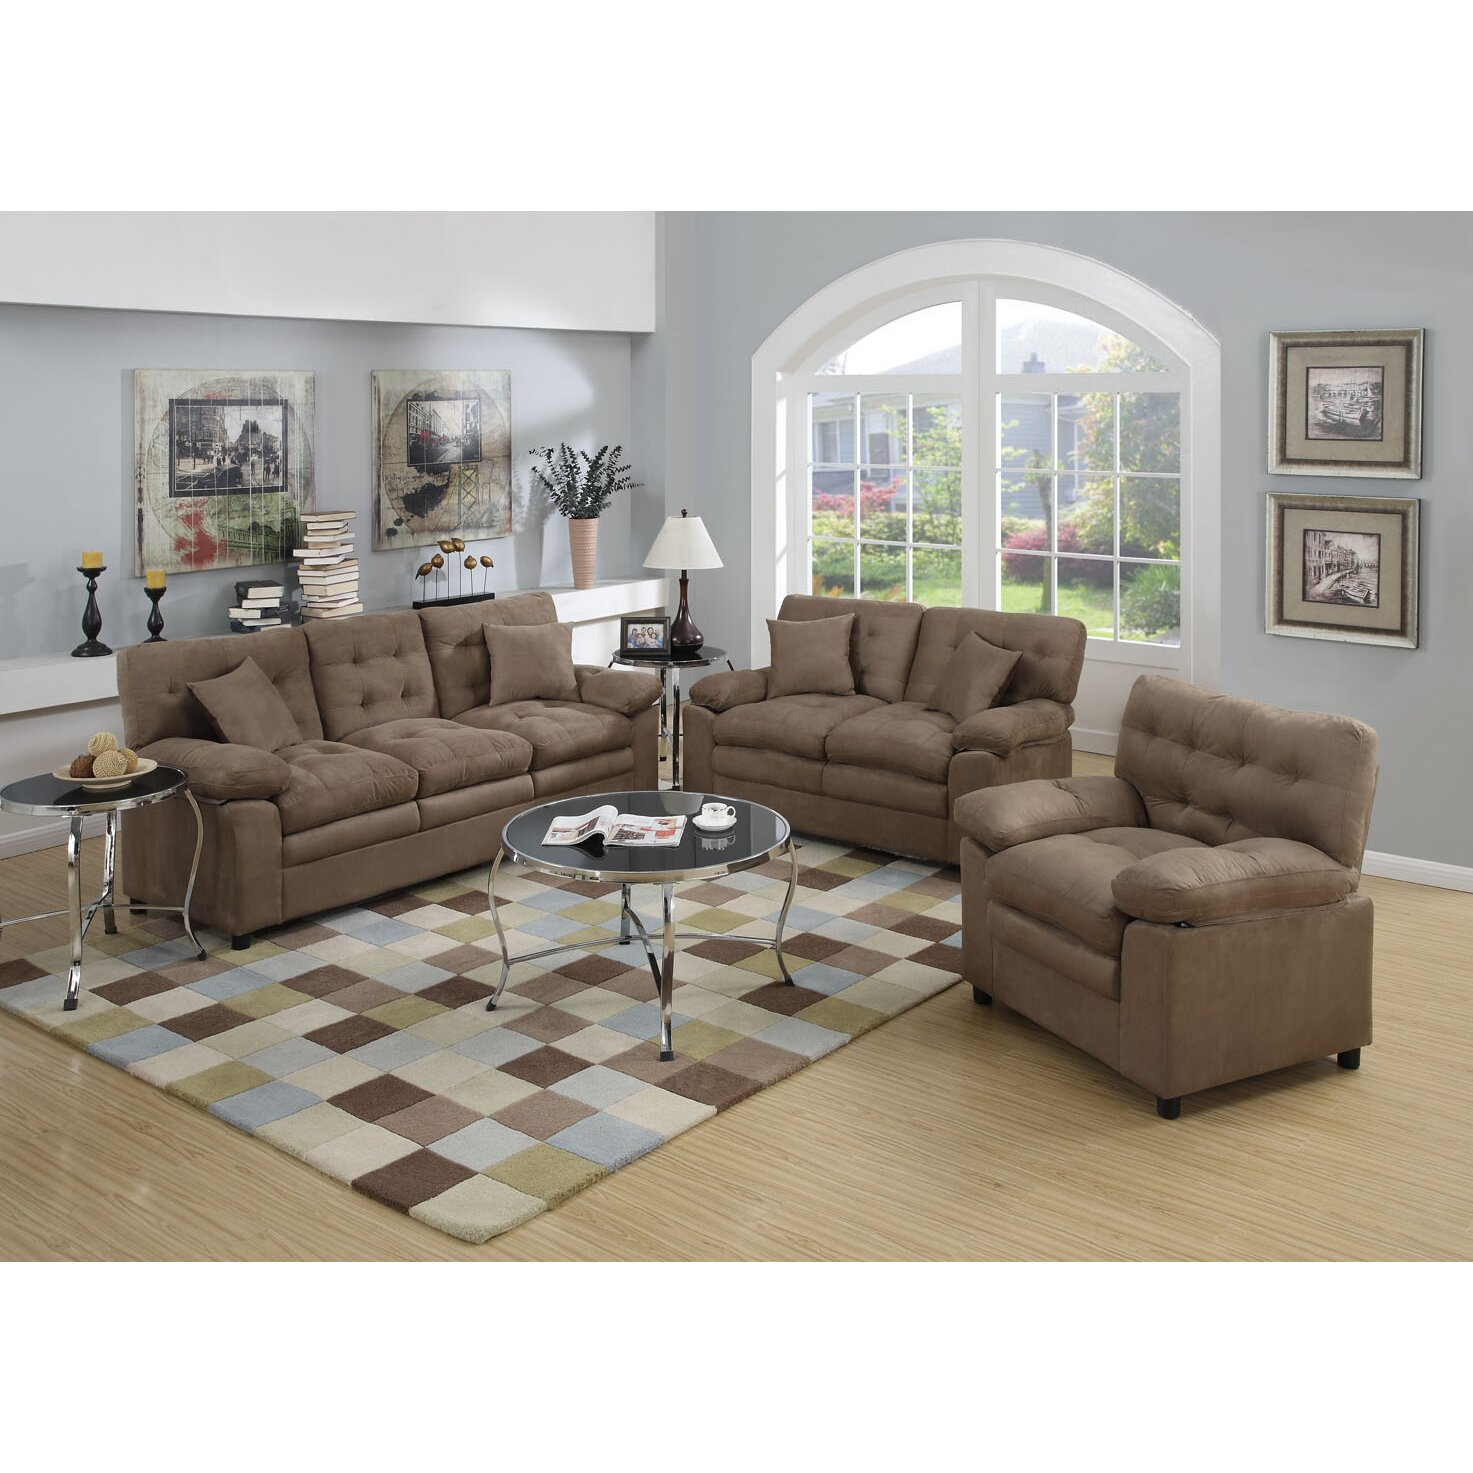 Poundex bobkona colona 3 piece living room set reviews Living room sofa set